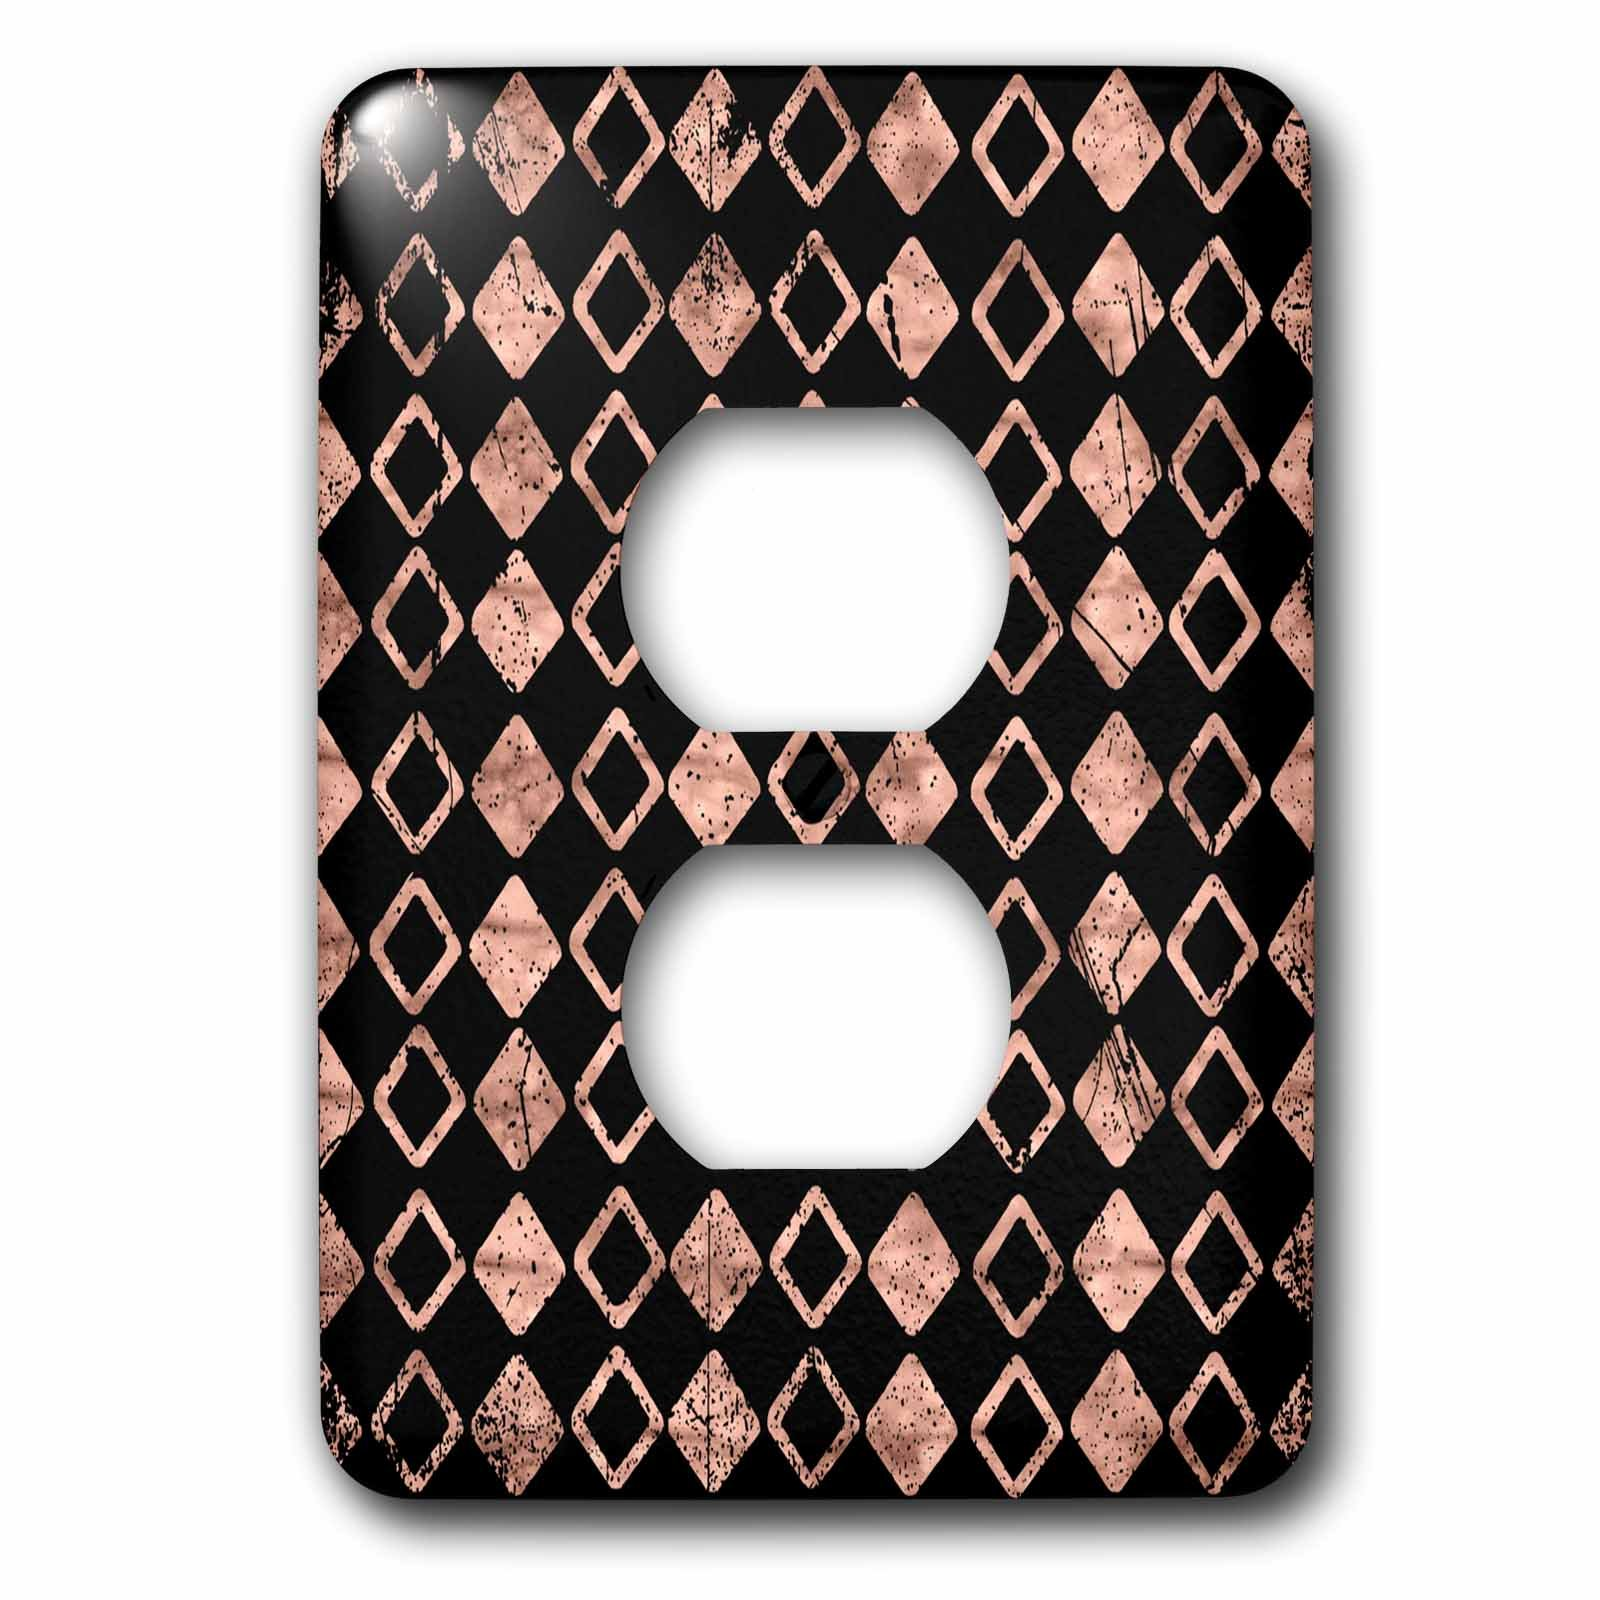 3dRose Uta Naumann Faux Glitter Pattern - Luxury Chic and Trendy Shiny Geometric Rosegold Pattern on Black - Light Switch Covers - 2 plug outlet cover (lsp_269033_6)